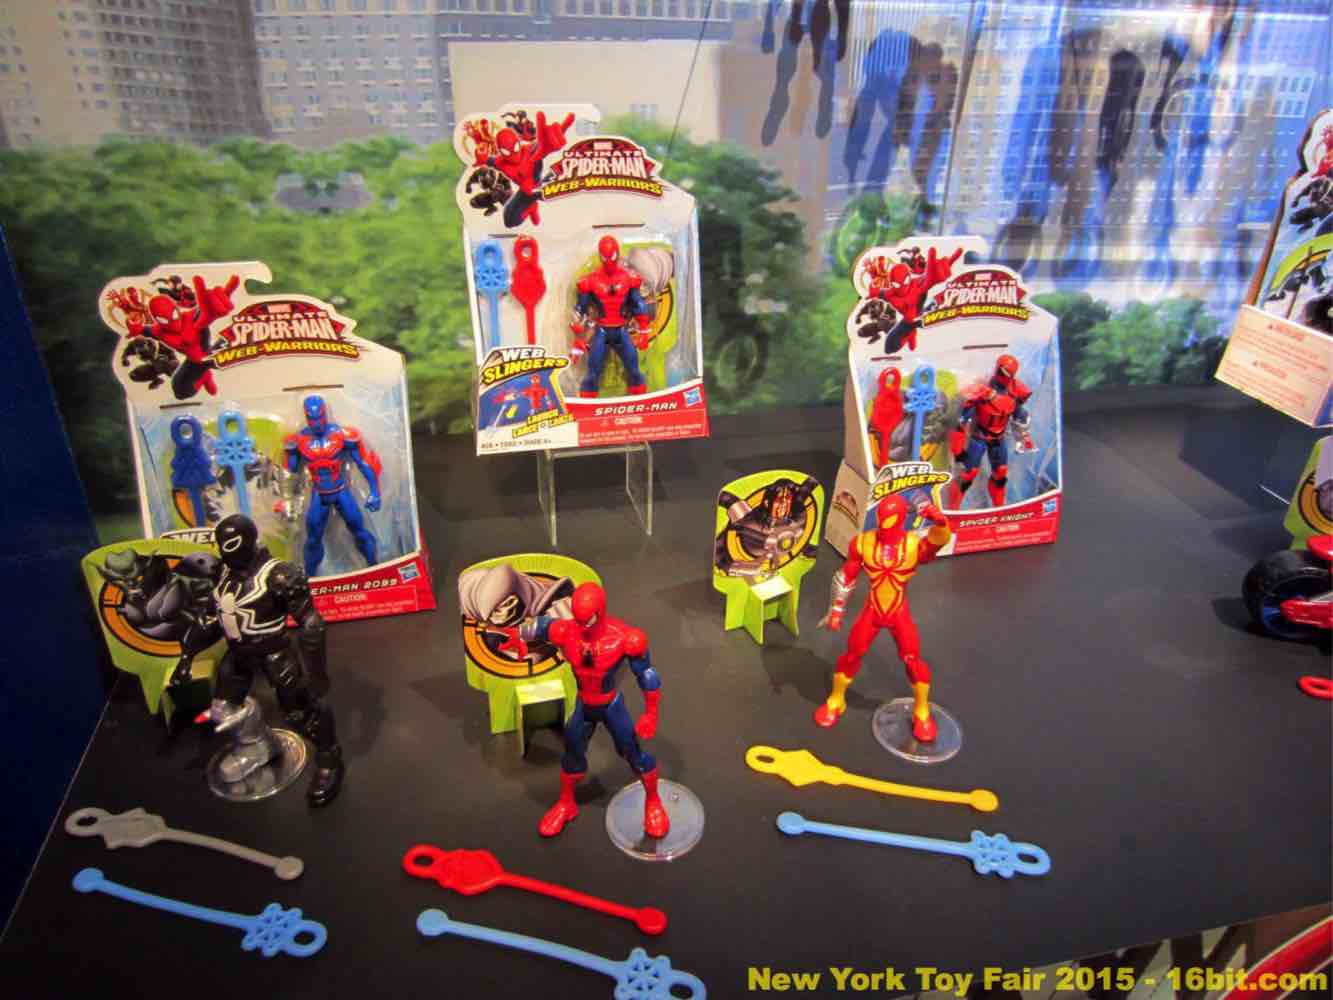 Toys From Hasbro : Bit toy fair coverage of hasbro marvel toys from